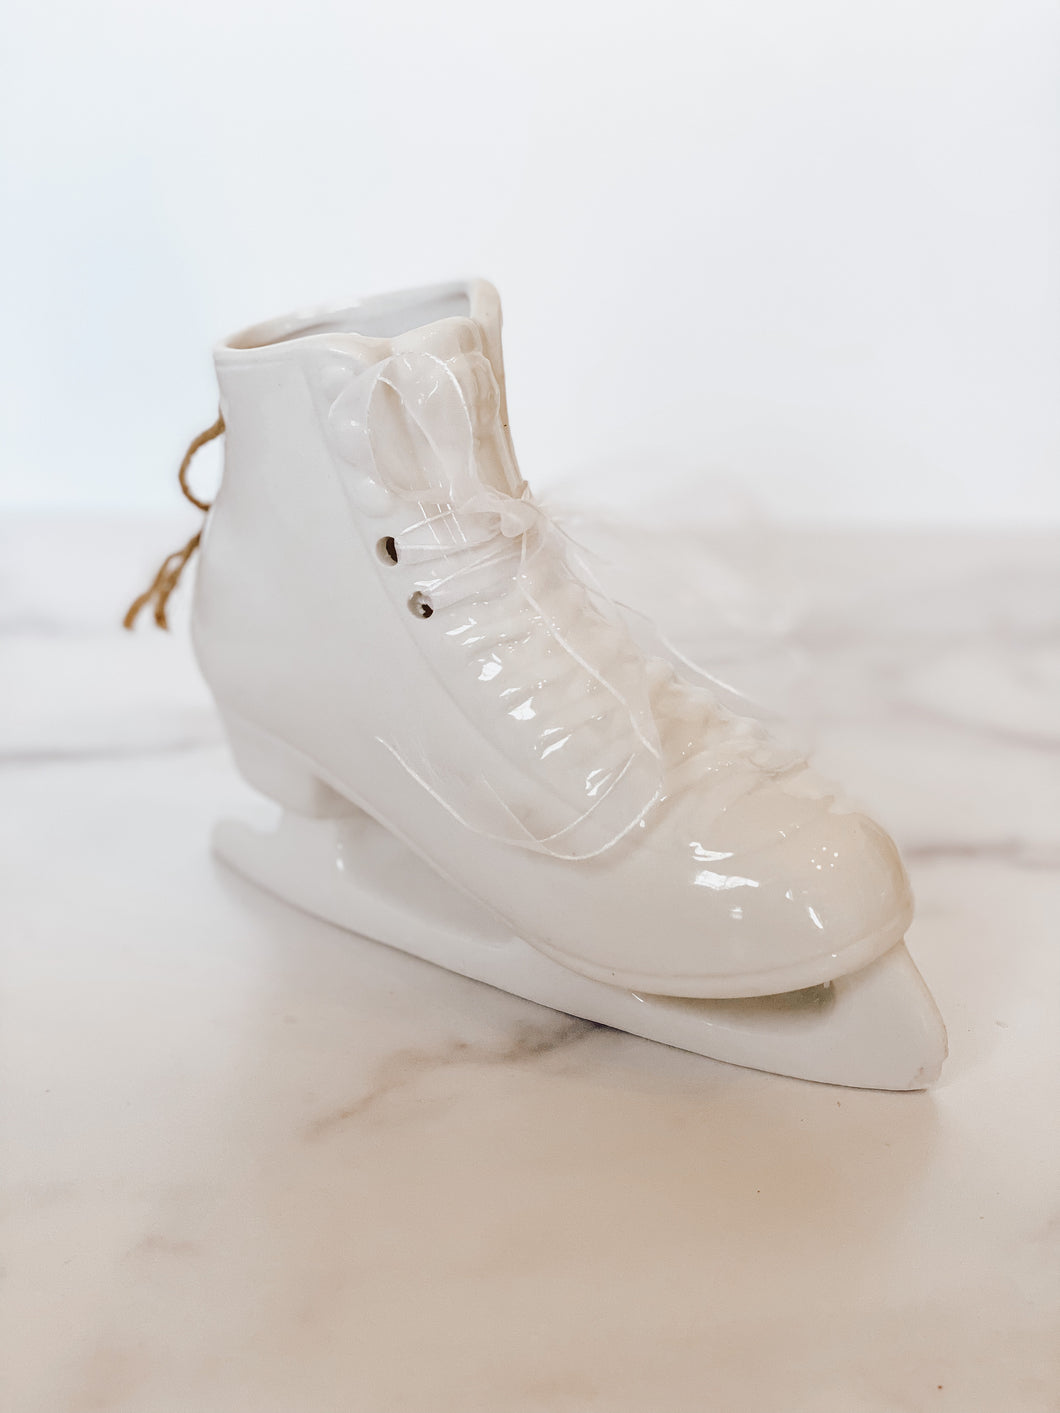 Ceramic Ice Skate Decor